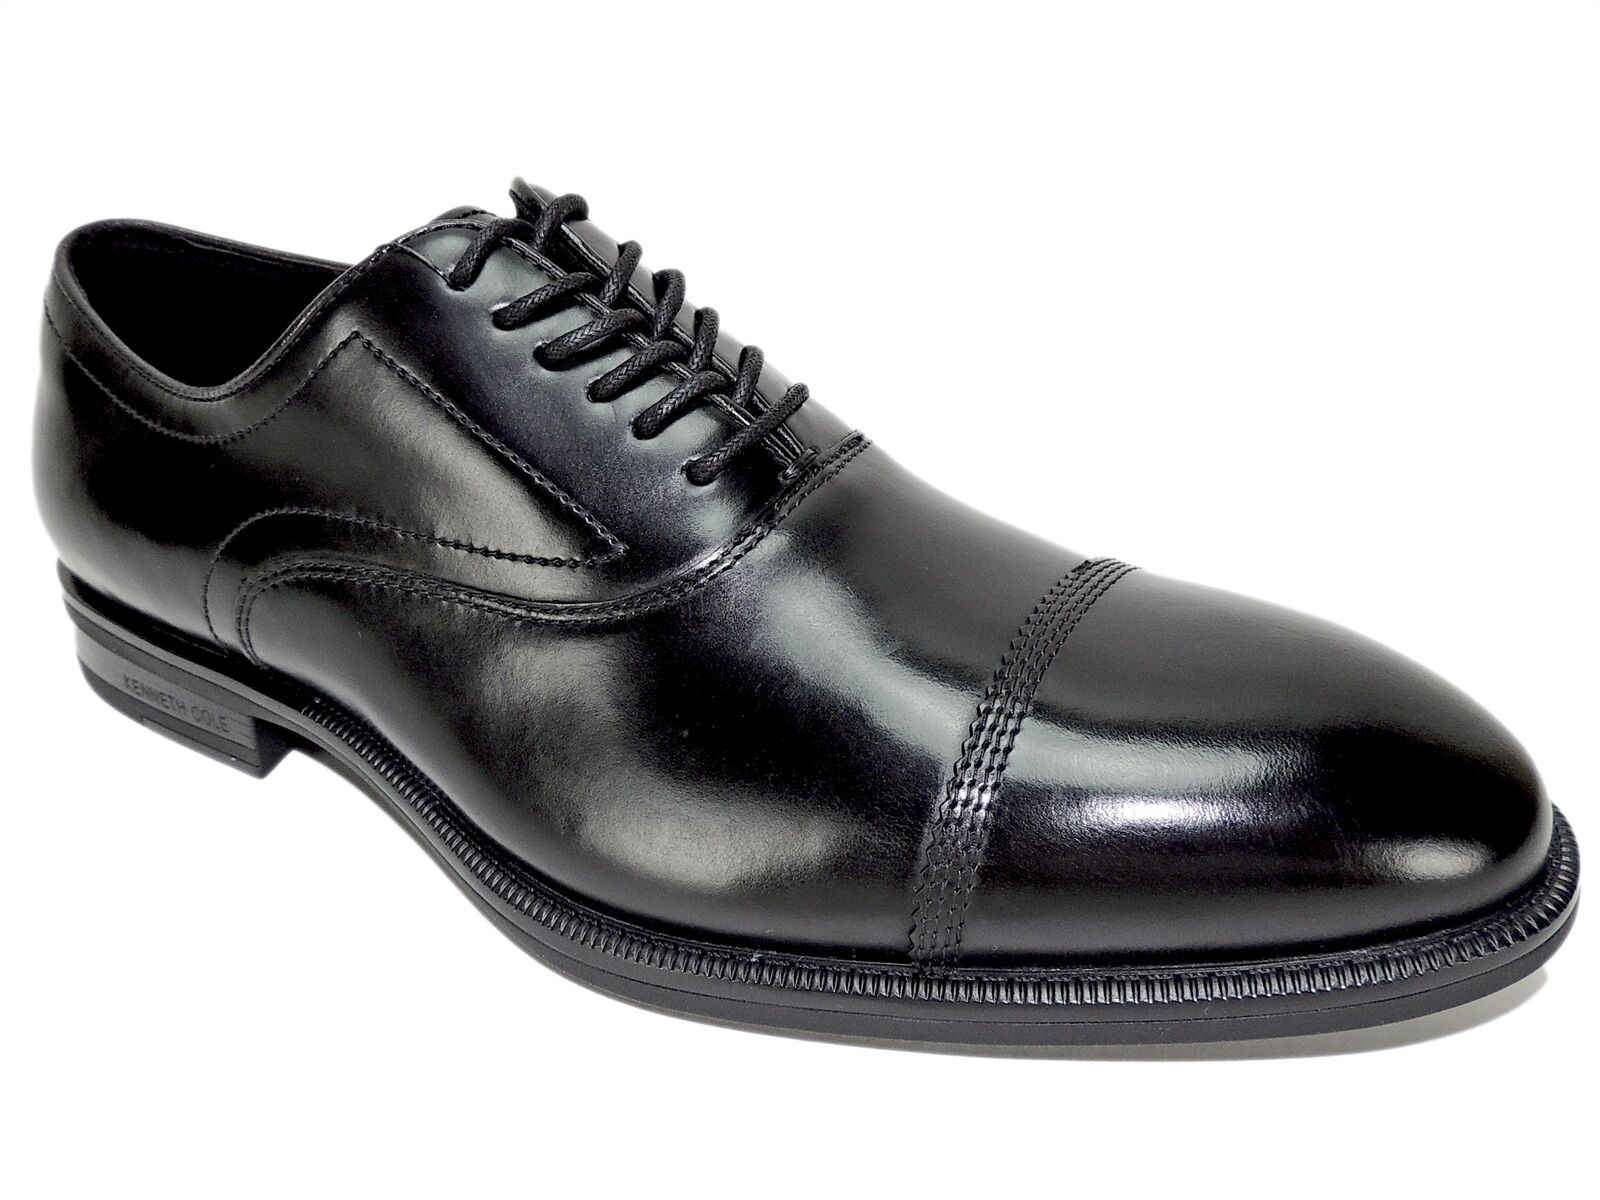 Kenneth Cole New York Men's Futurepod Lace-Up Oxfords Black Leather Size 8 M